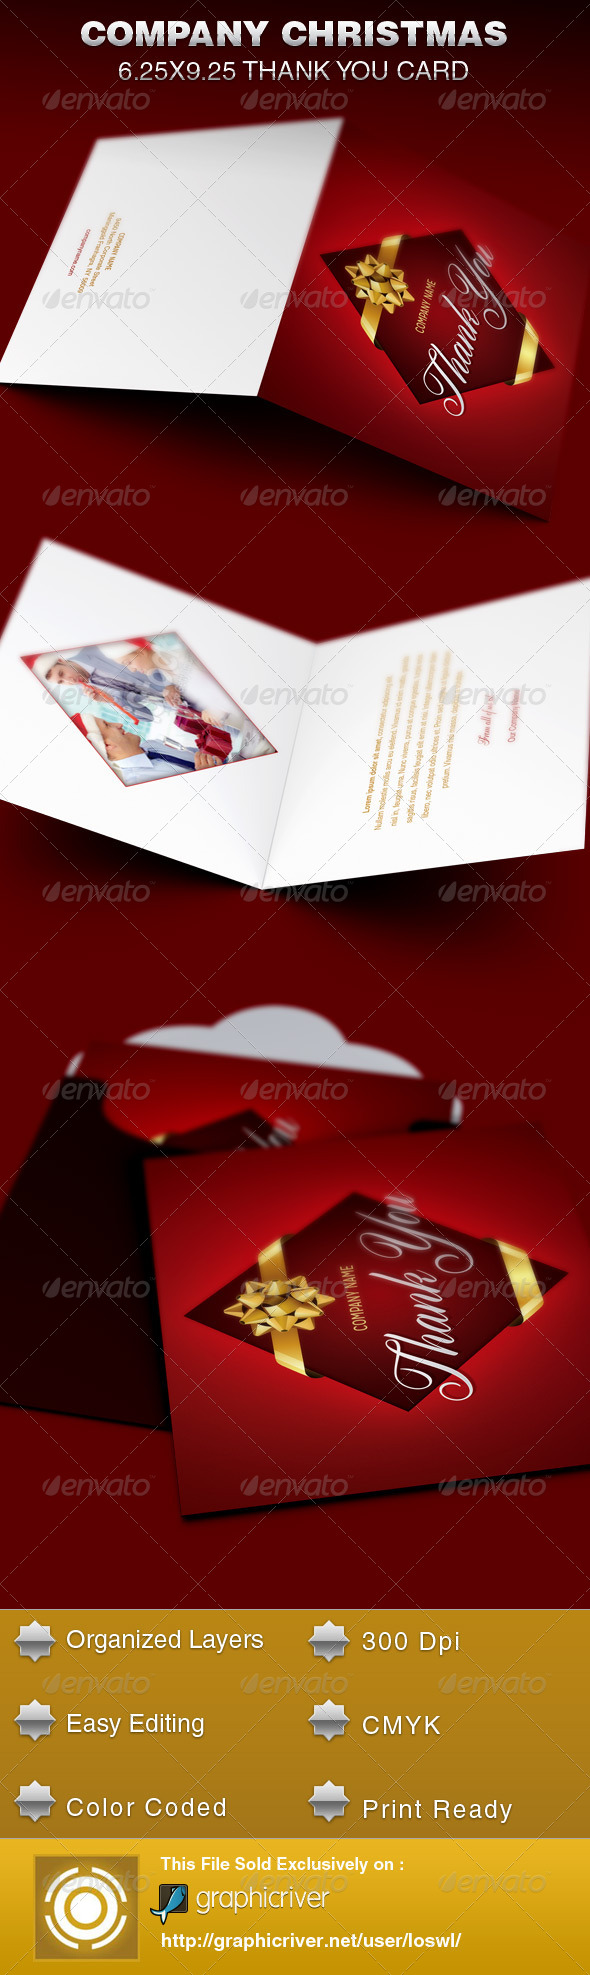 GraphicRiver Company Christmas Thank You Card Template 6255076